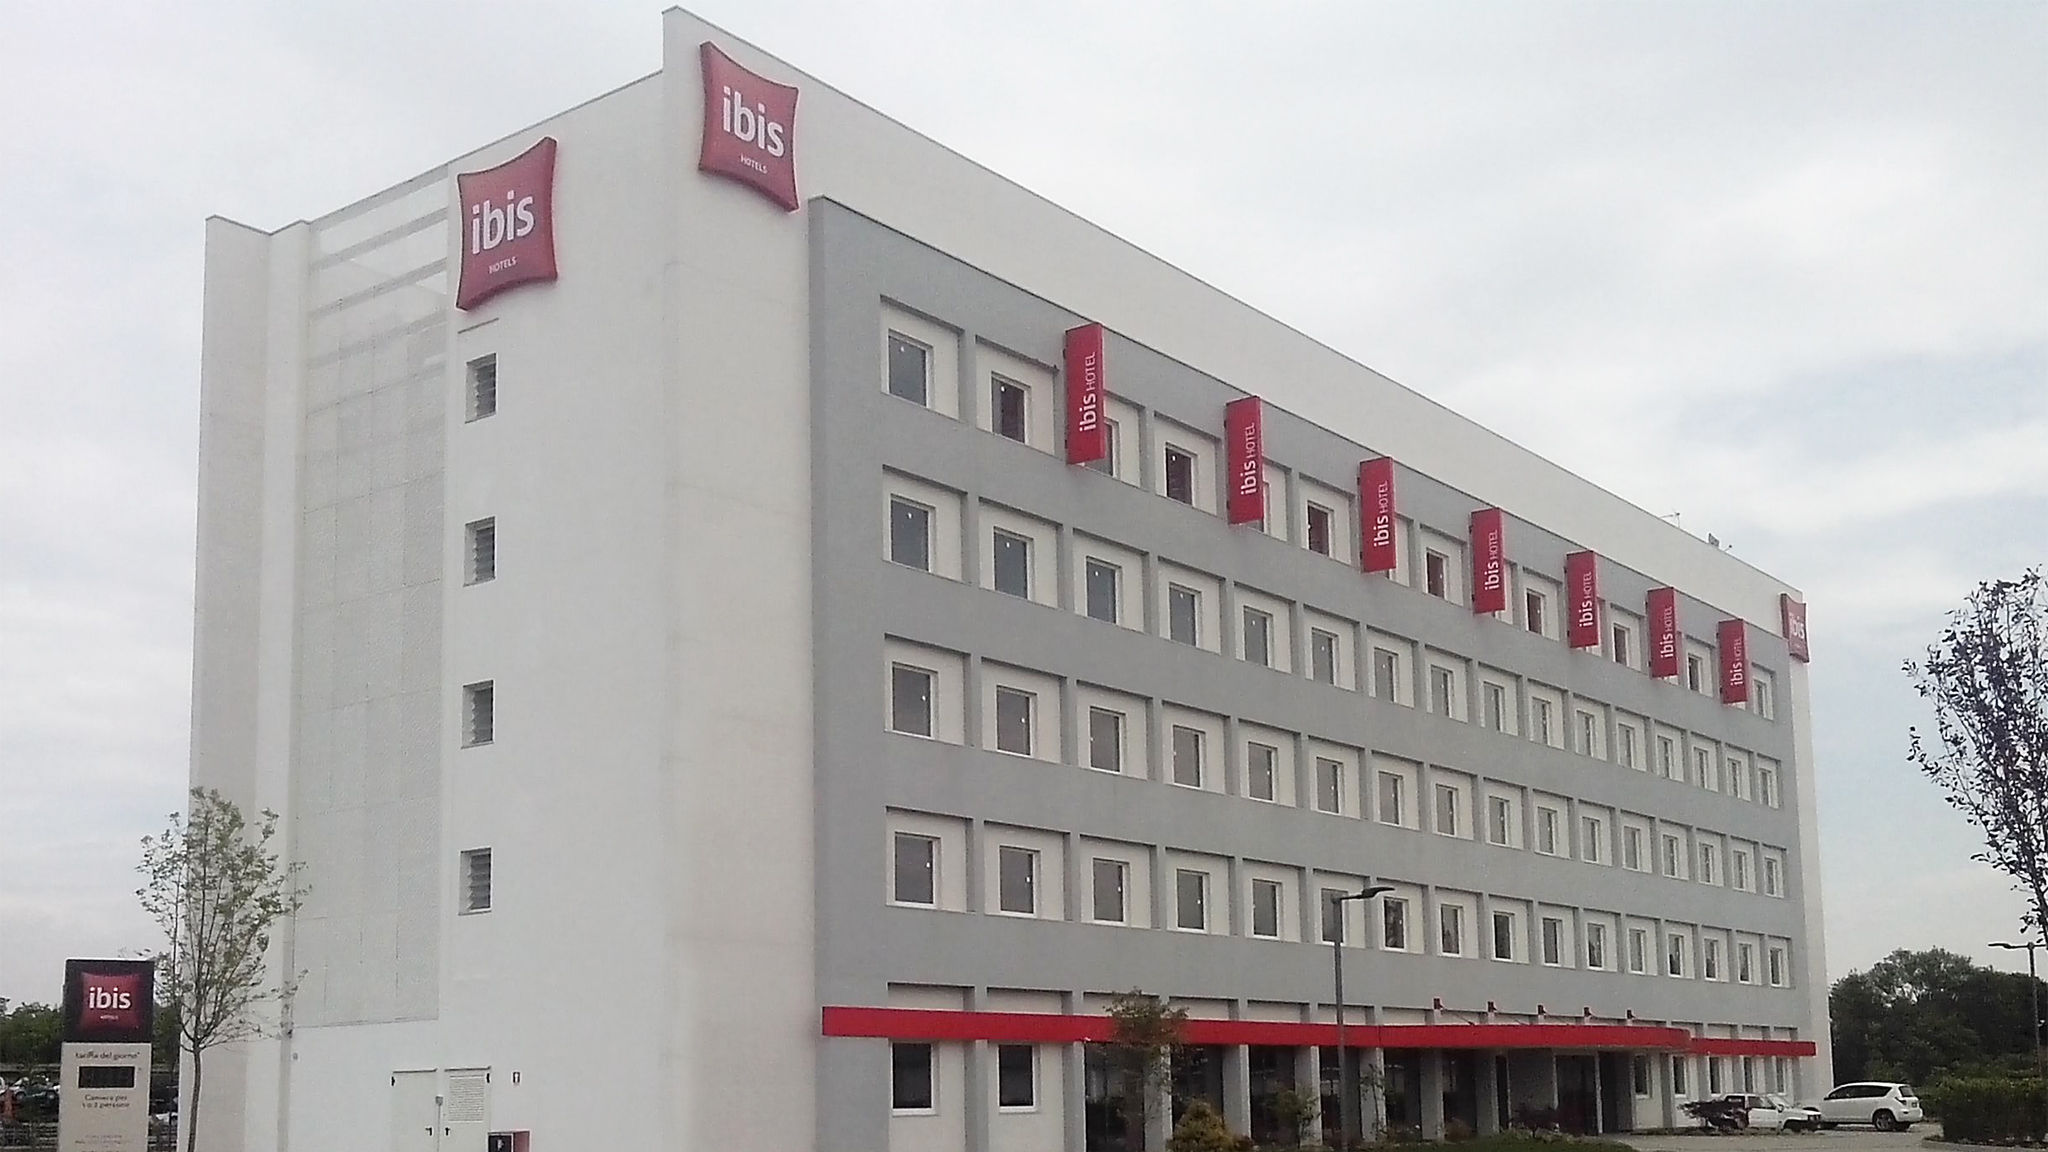 Hotel Ibis_home